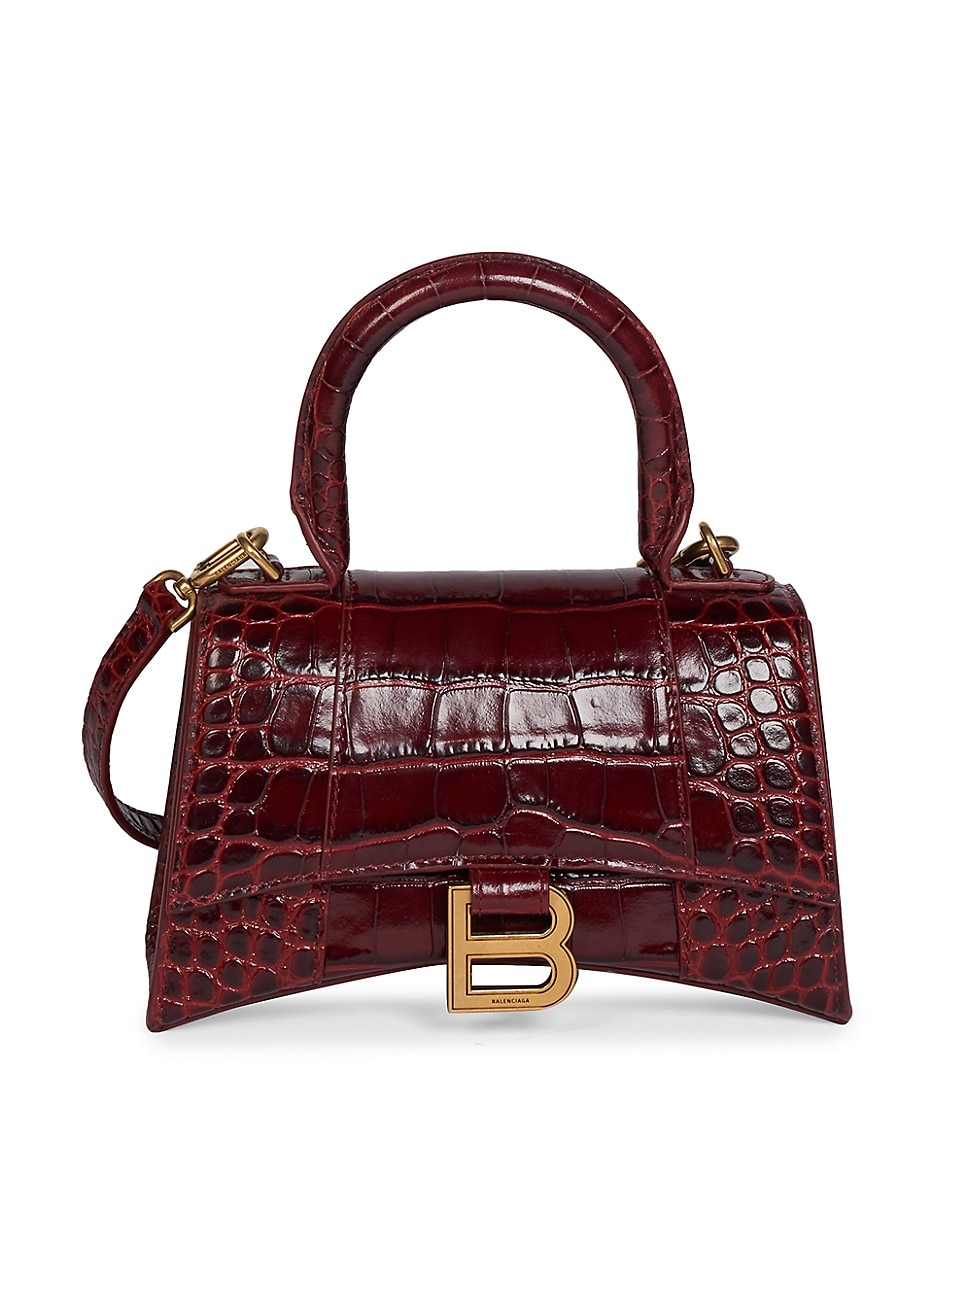 Balenciaga WOMEN'S EXTRA-SMALL HOURGLASS CROC-EMBOSSED LEATHER TOP HANDLE BAG